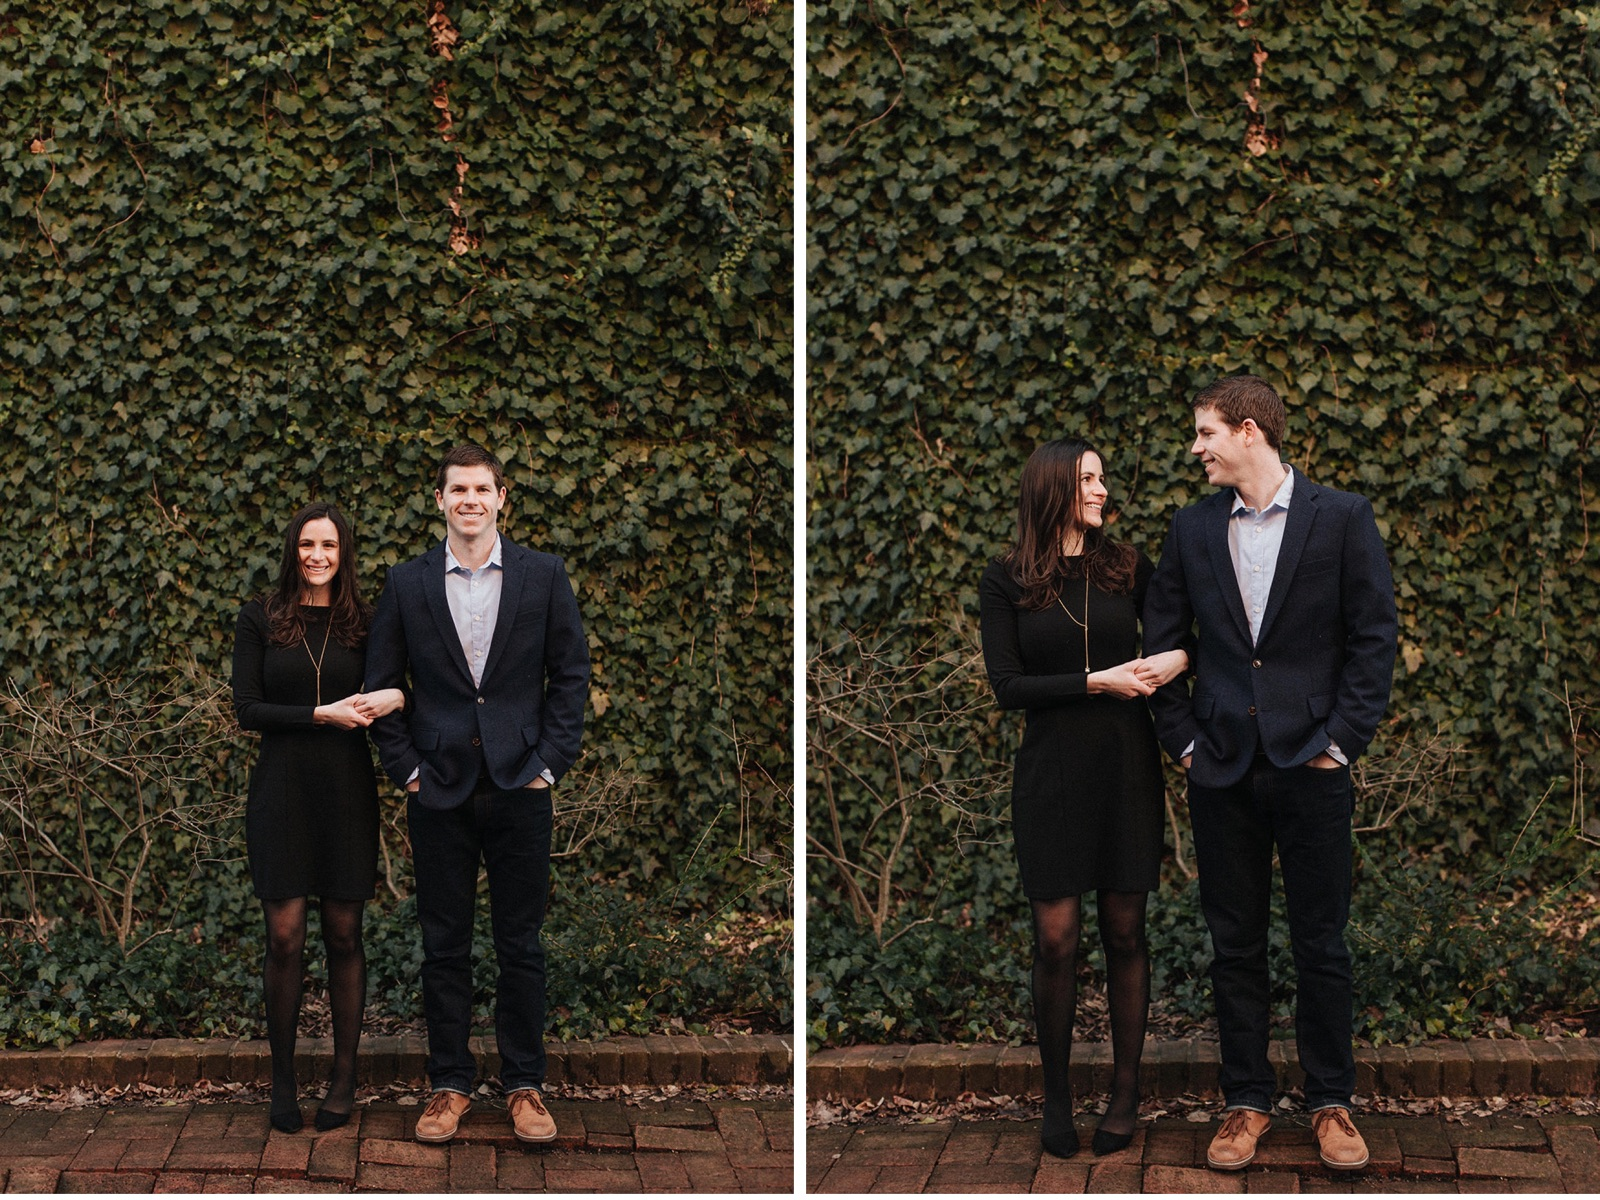 05_Headhouse_photography_engagement_philadelphia.jpg